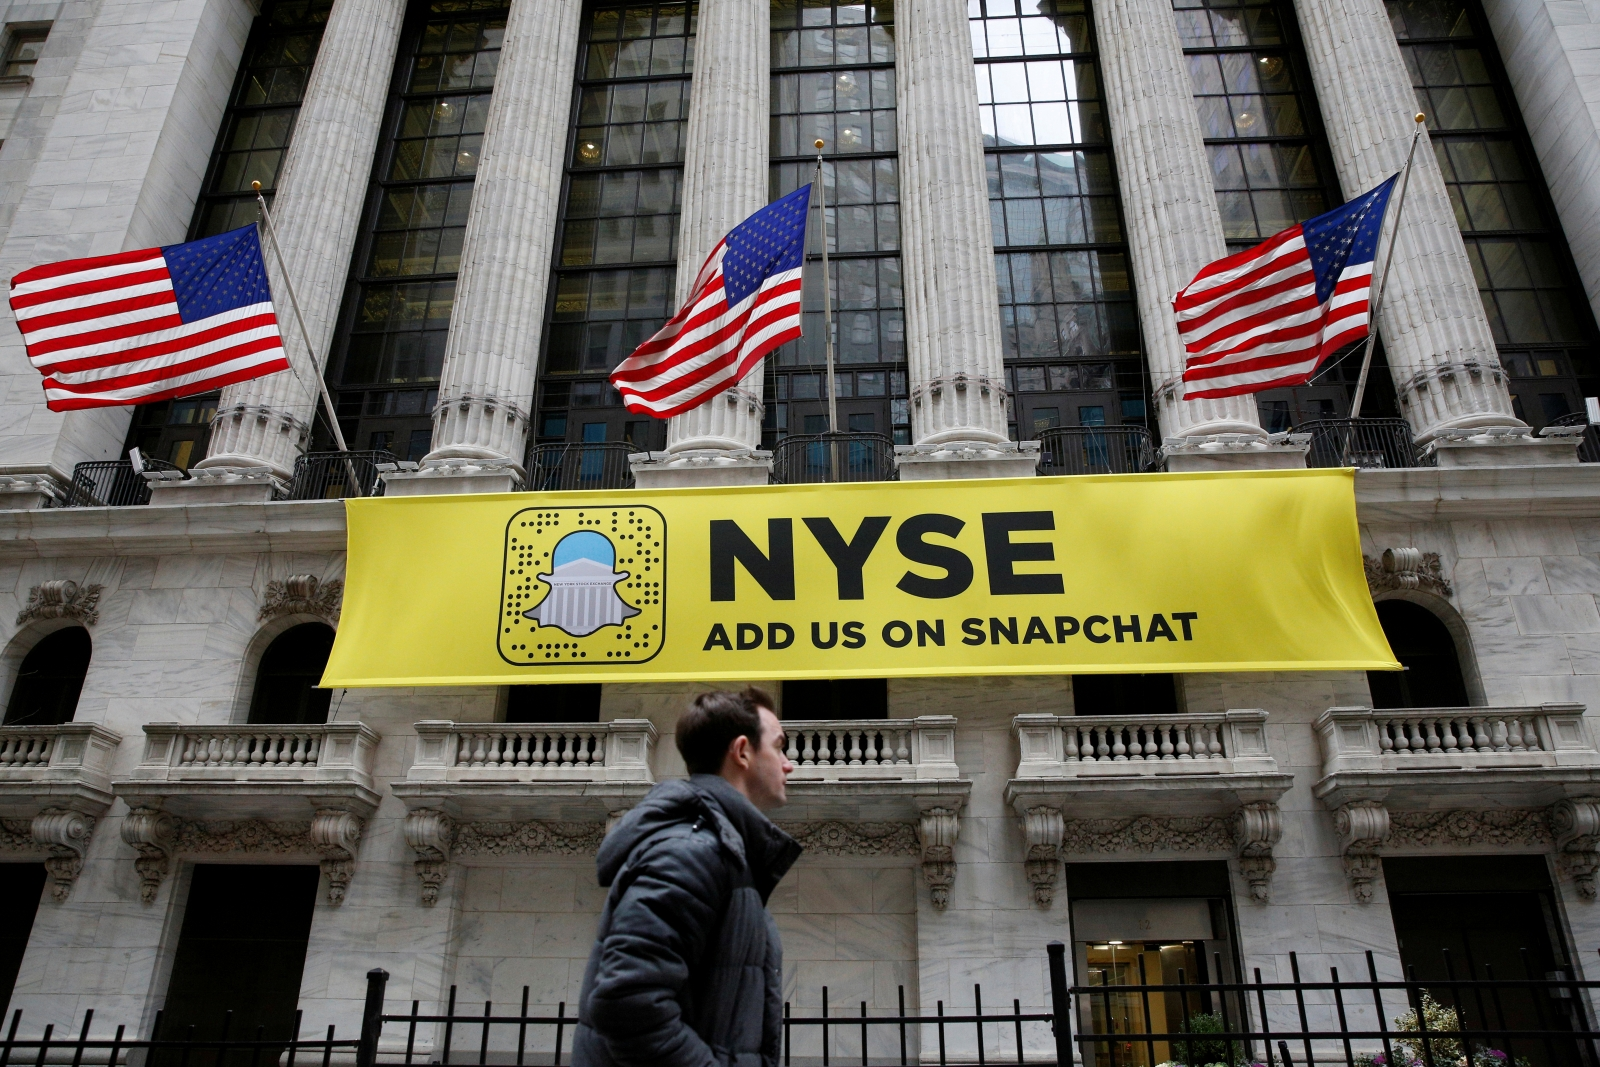 Snapchat IPO: Snap, crackle and pop as shares surge by over 40% in Wall Street debut